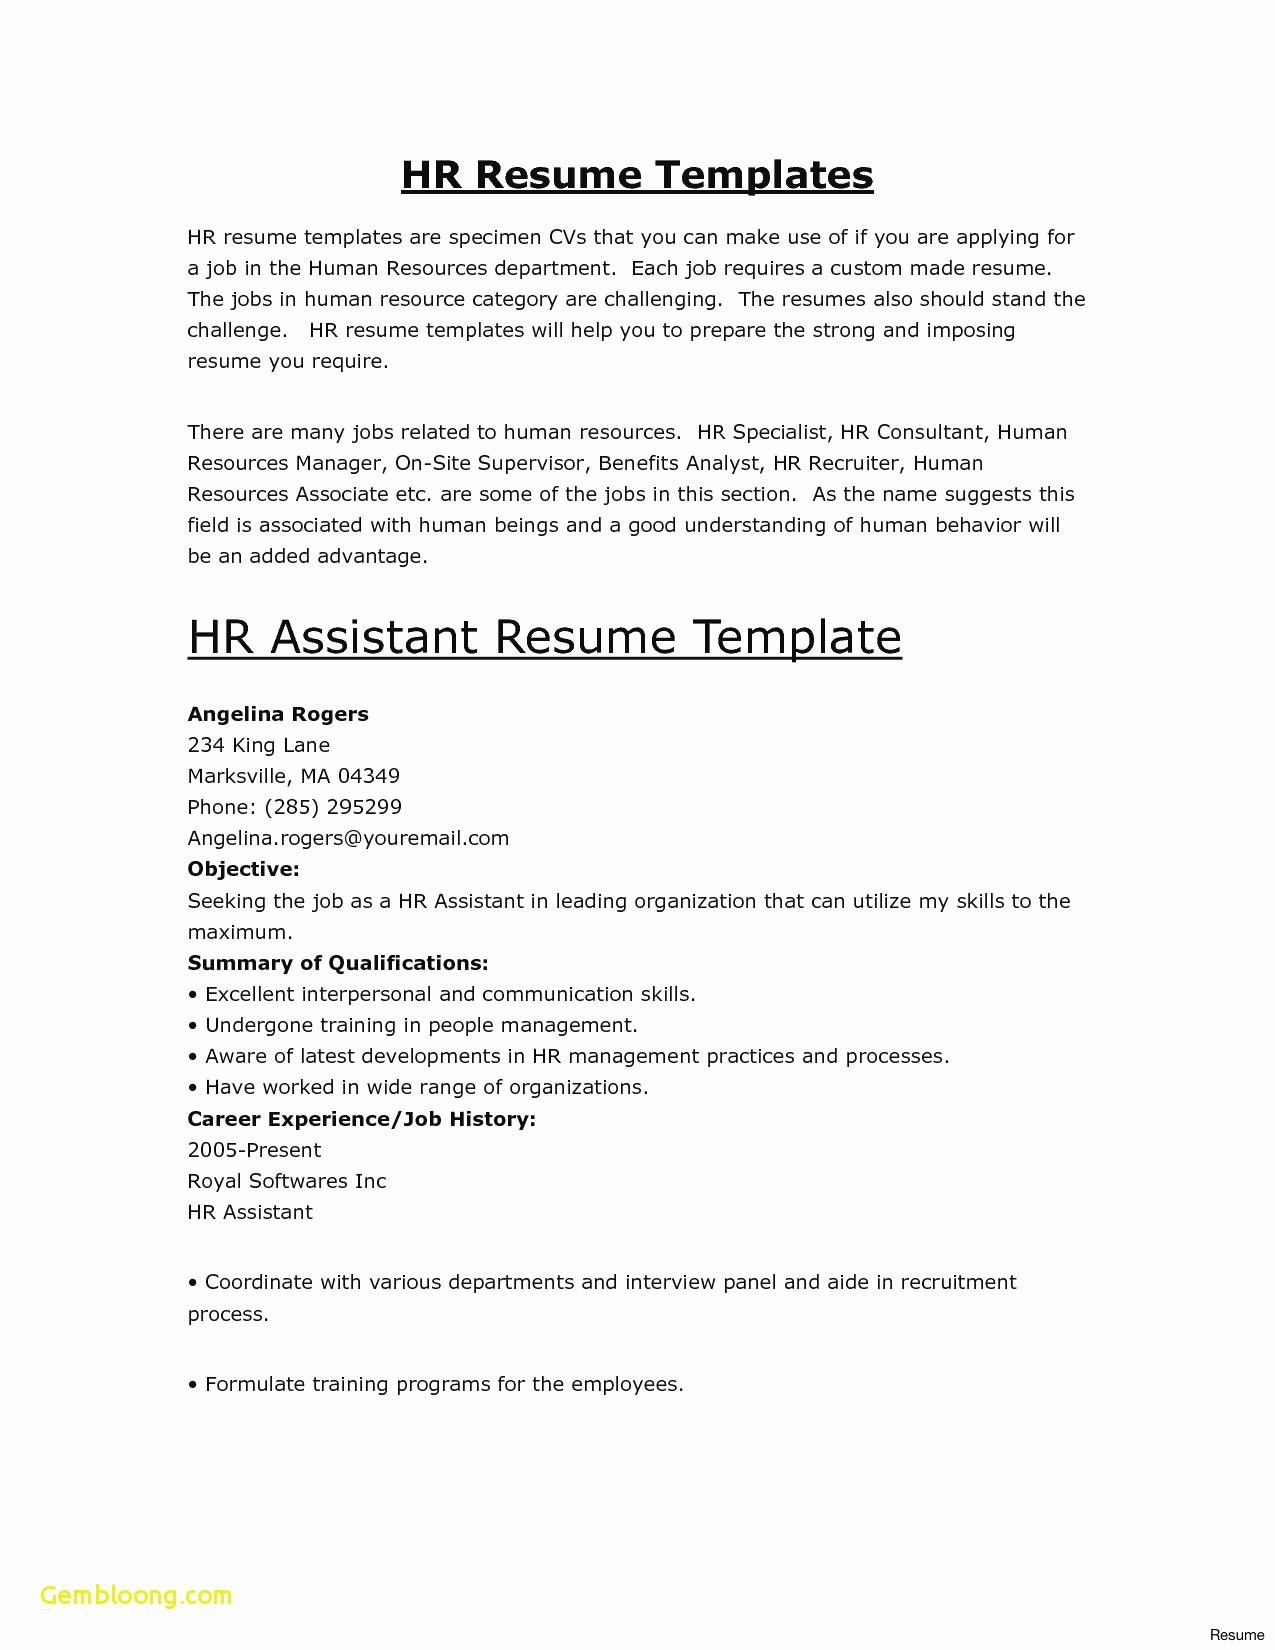 Resume for Interview - Graphic Design Job Description Resume Fresh Best Resumes Ever